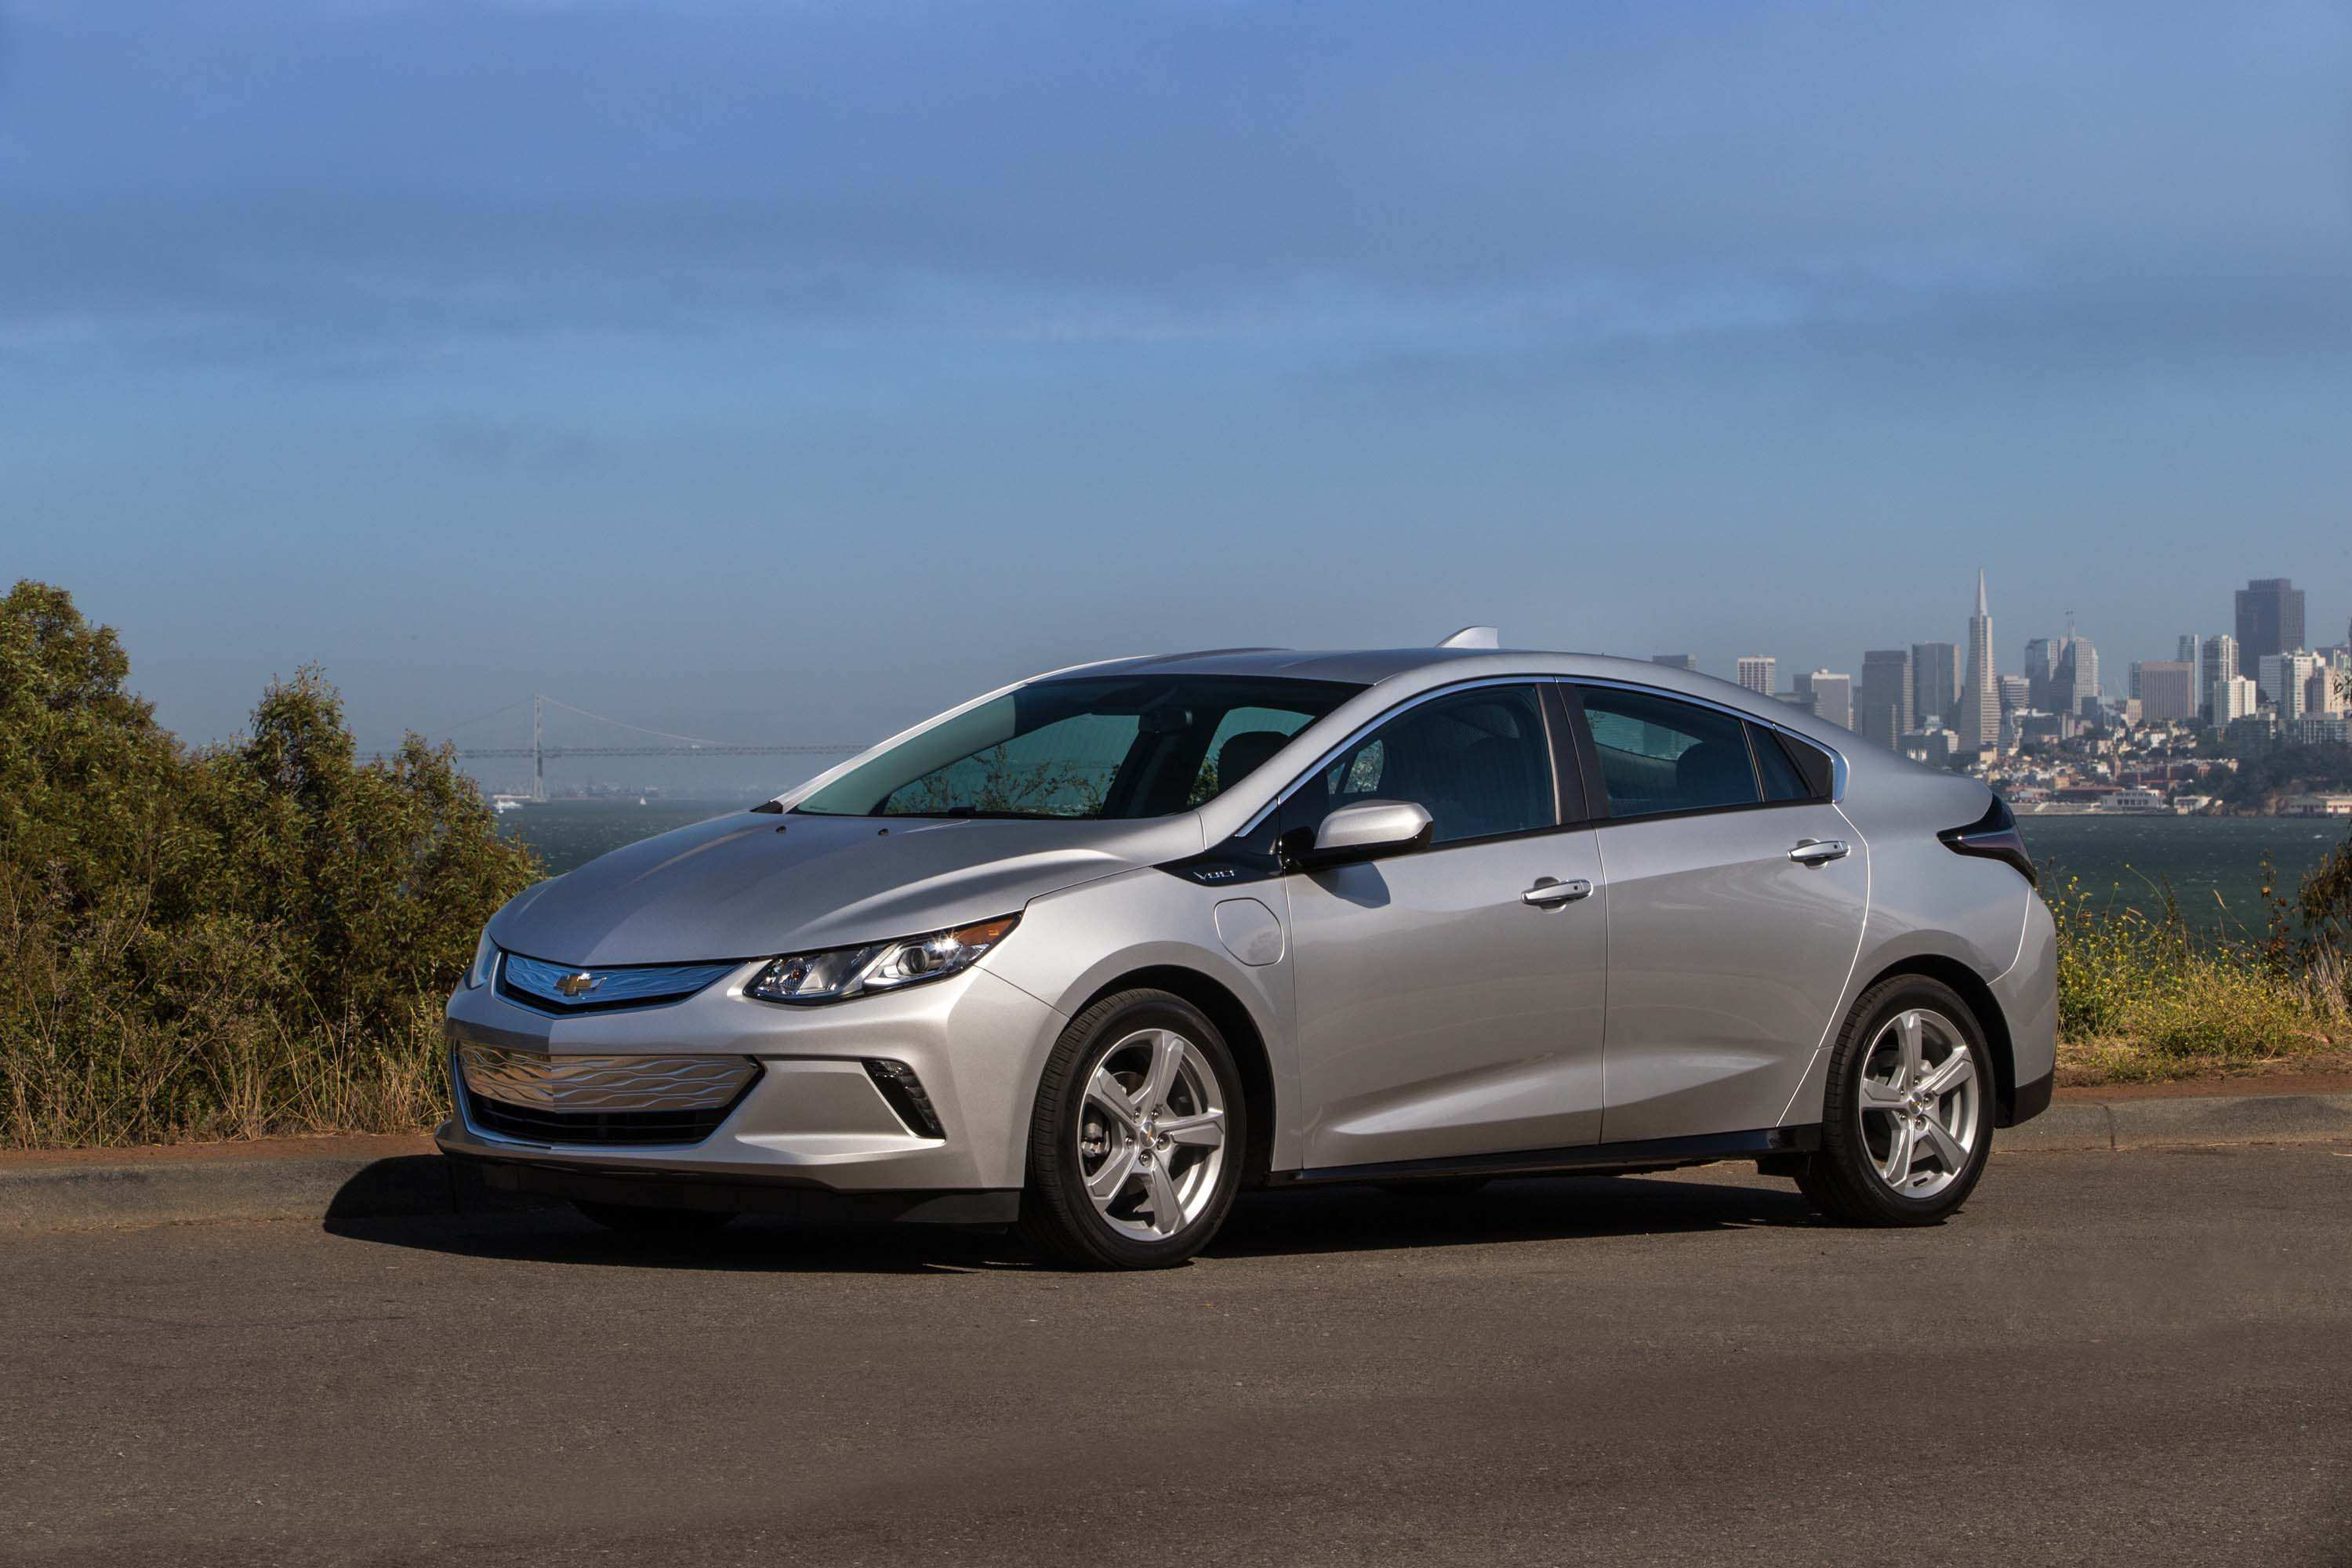 23 New 2019 Chevy Volt Configurations